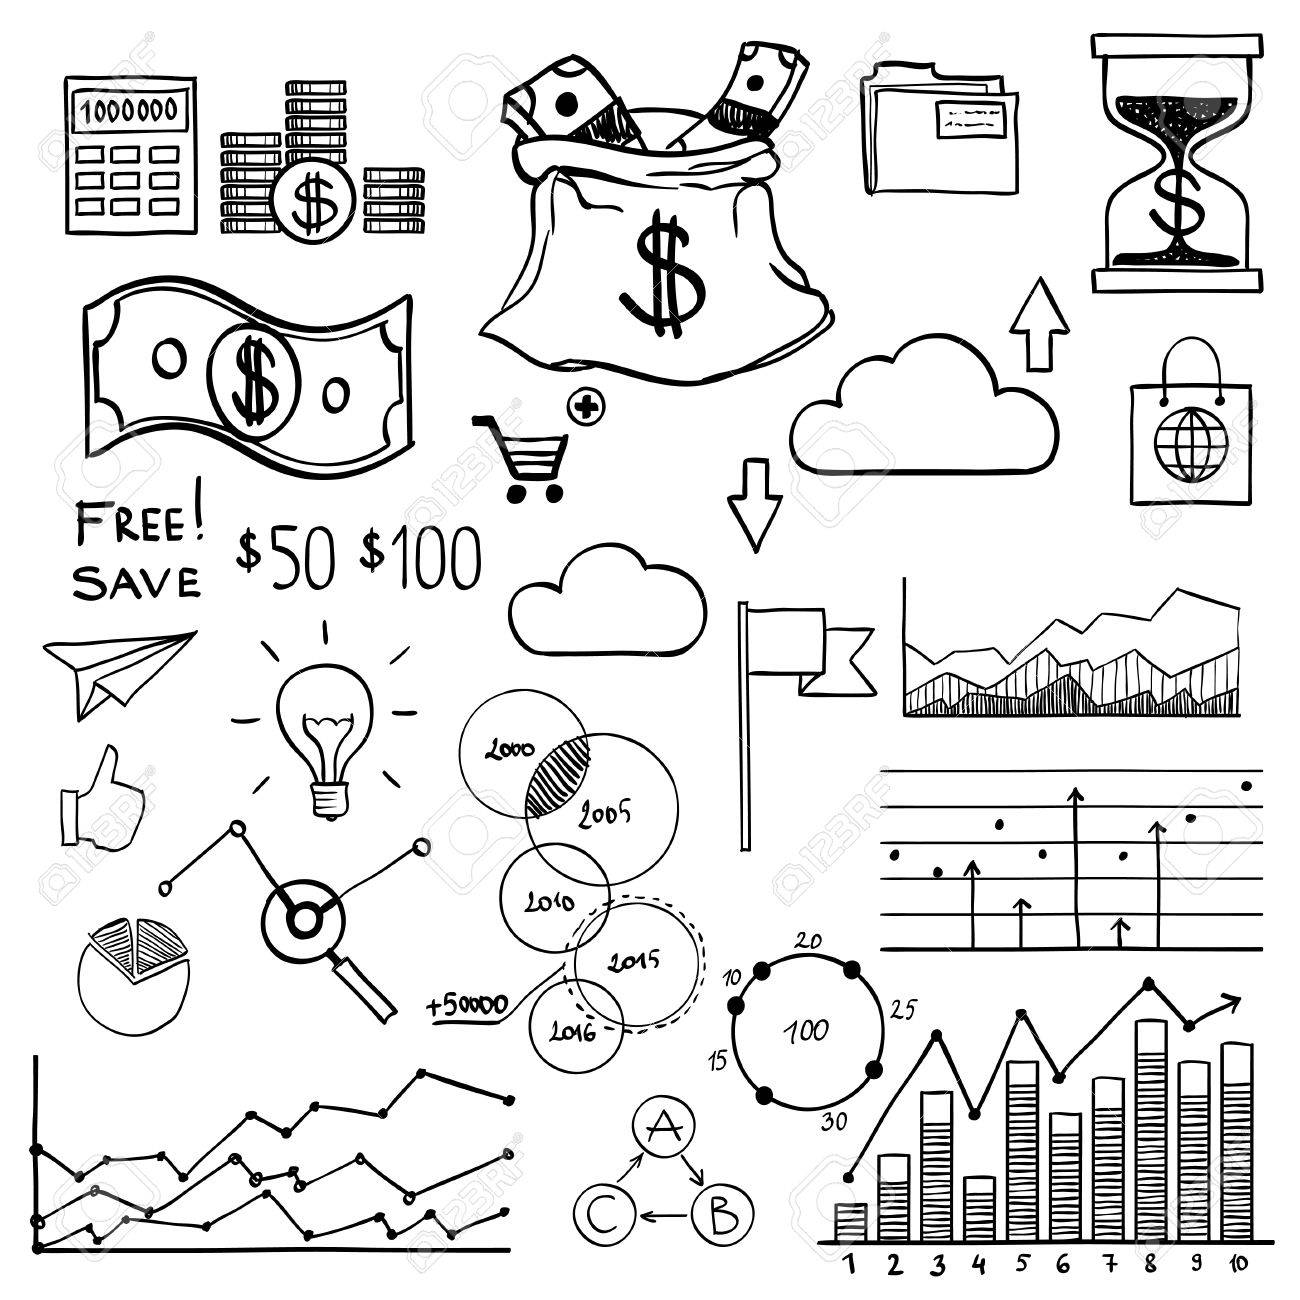 hand draw doodle elements money and coin icon chart and graph Venipuncture Order of Draw Chart hand draw doodle elements money and coin icon chart and graph concept bank business